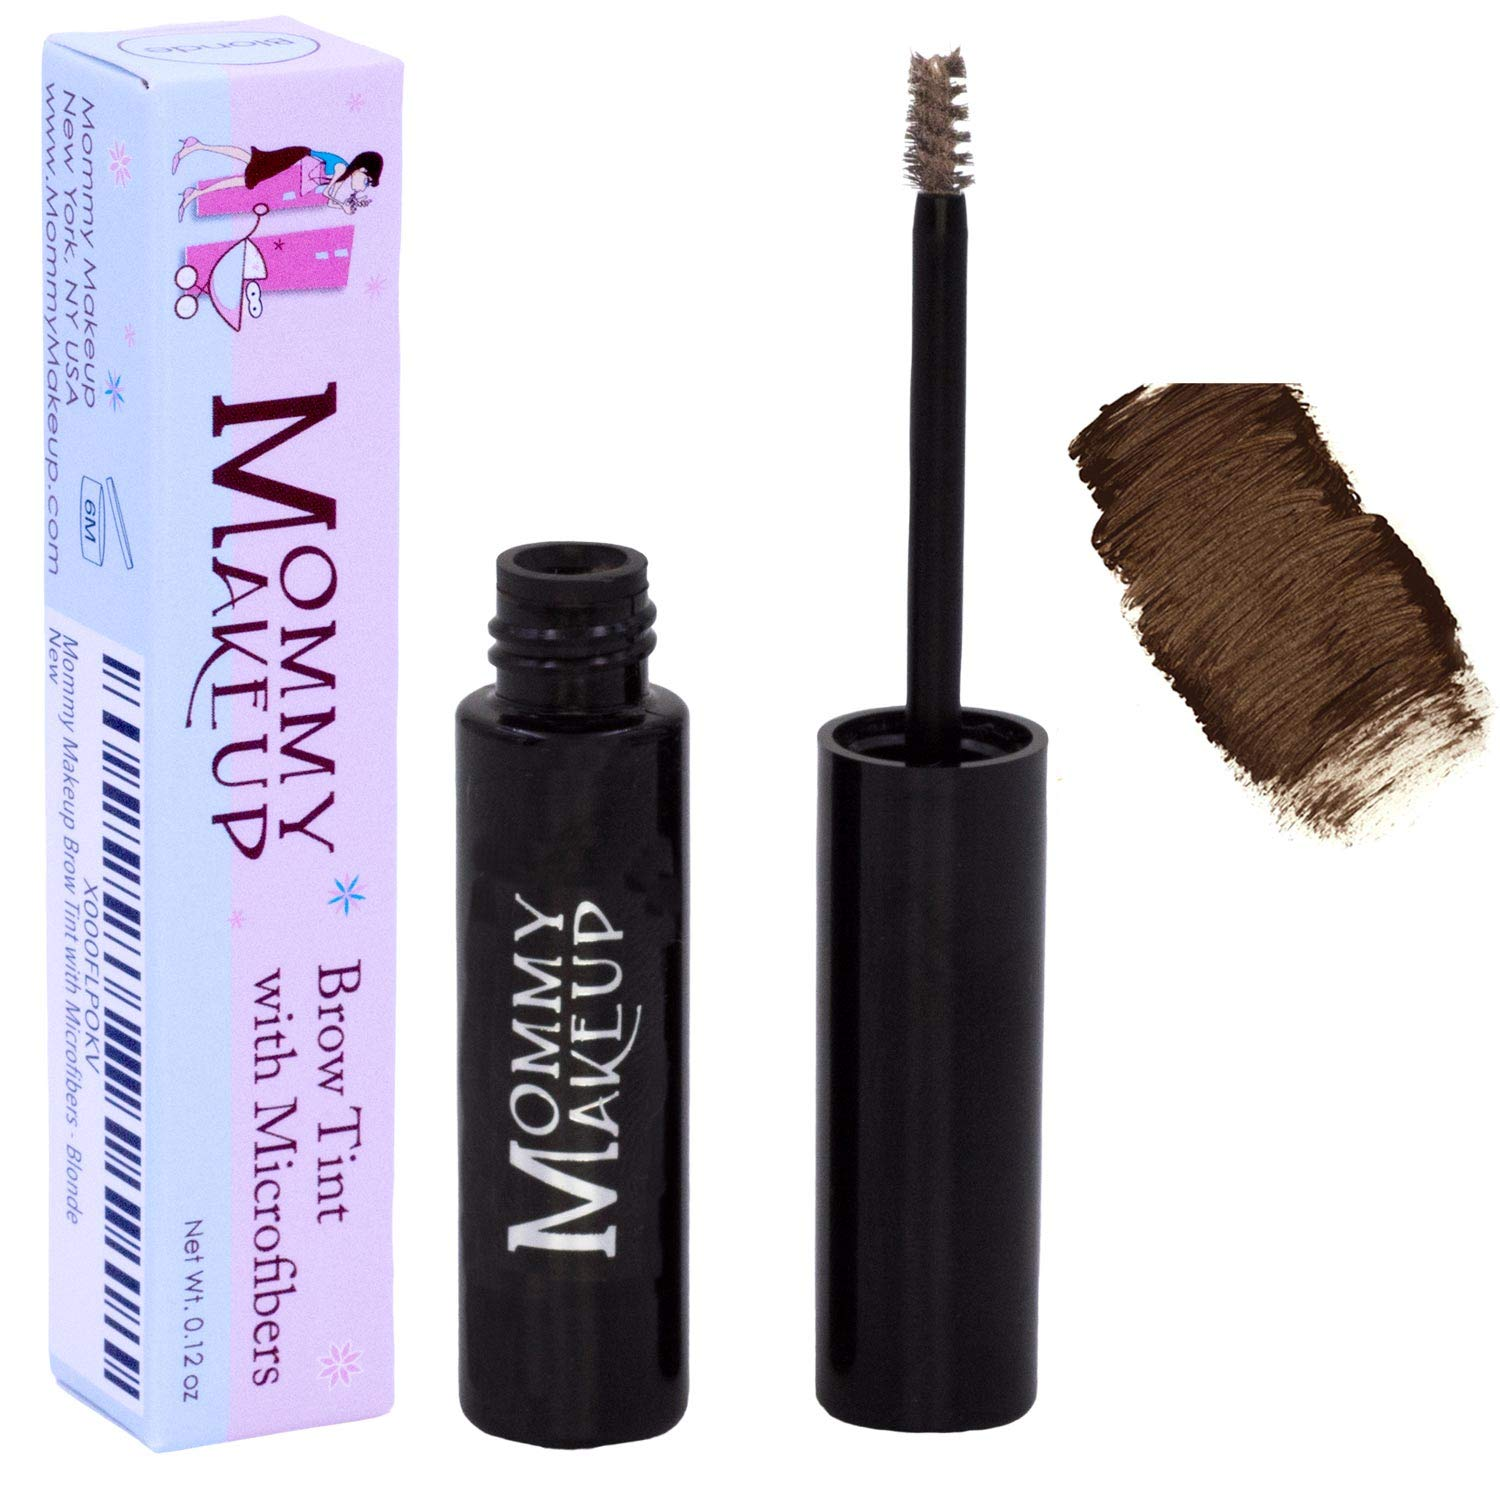 Mommy Makeup Brow Tint with Microfibers. Eyebrow Makeup - Long Lasting Eyebrow Gel. Clump-Free, Paraben-free, Talc-free, Made in USA. PETA Certified No Animal Testing - Sable